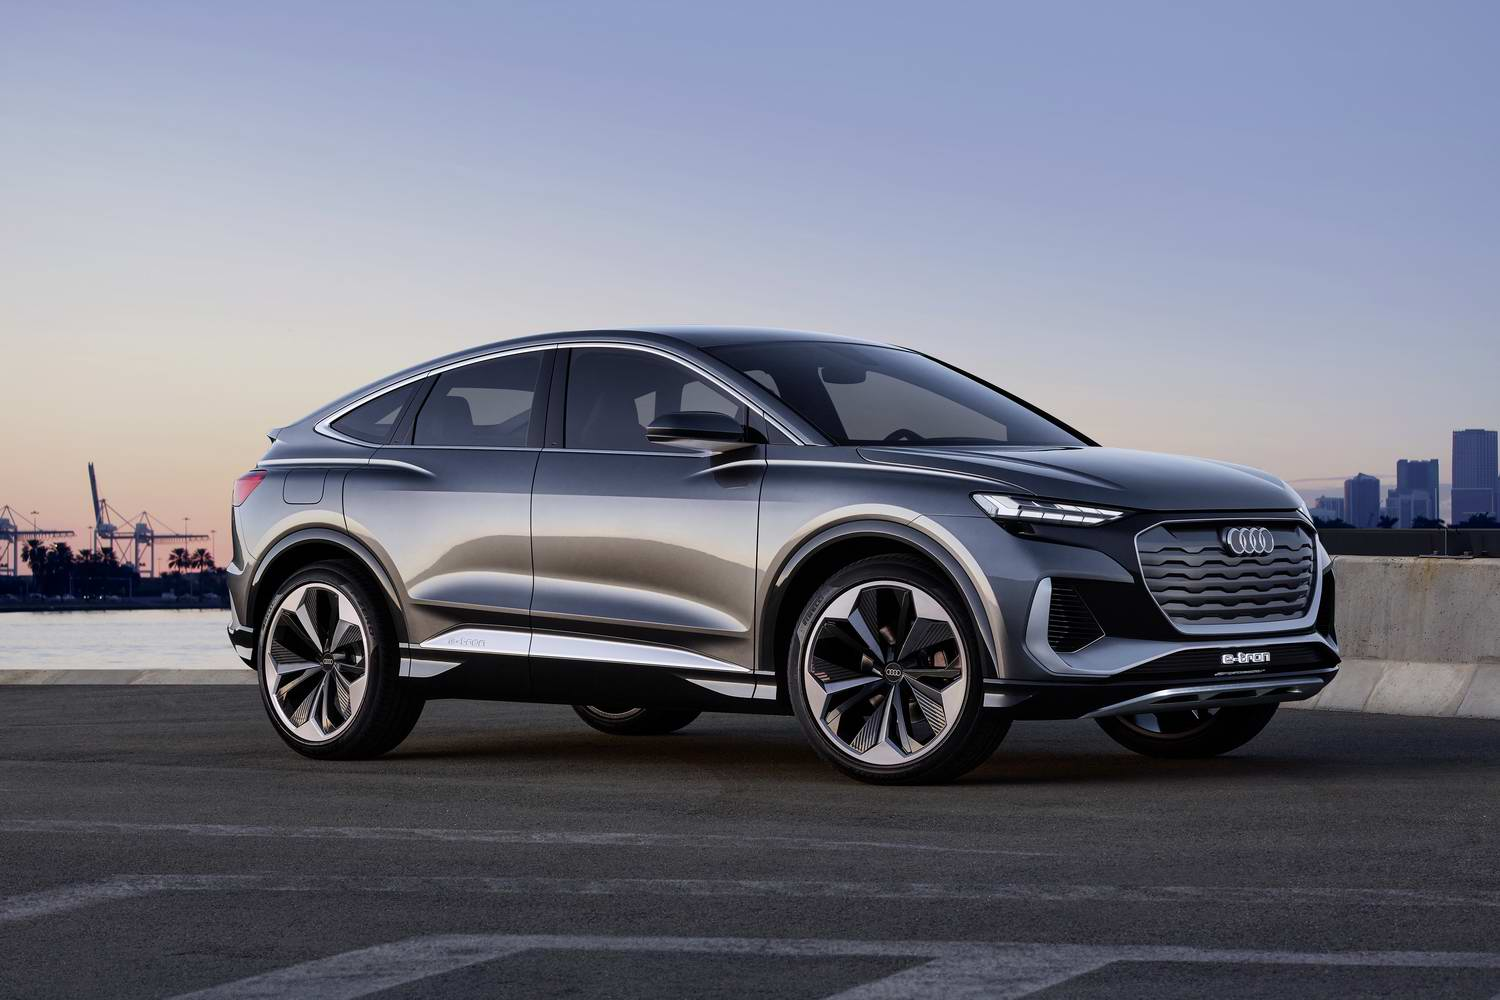 Car News | Audi Q4 e-tron to sire Sportback variant | CompleteCar.ie